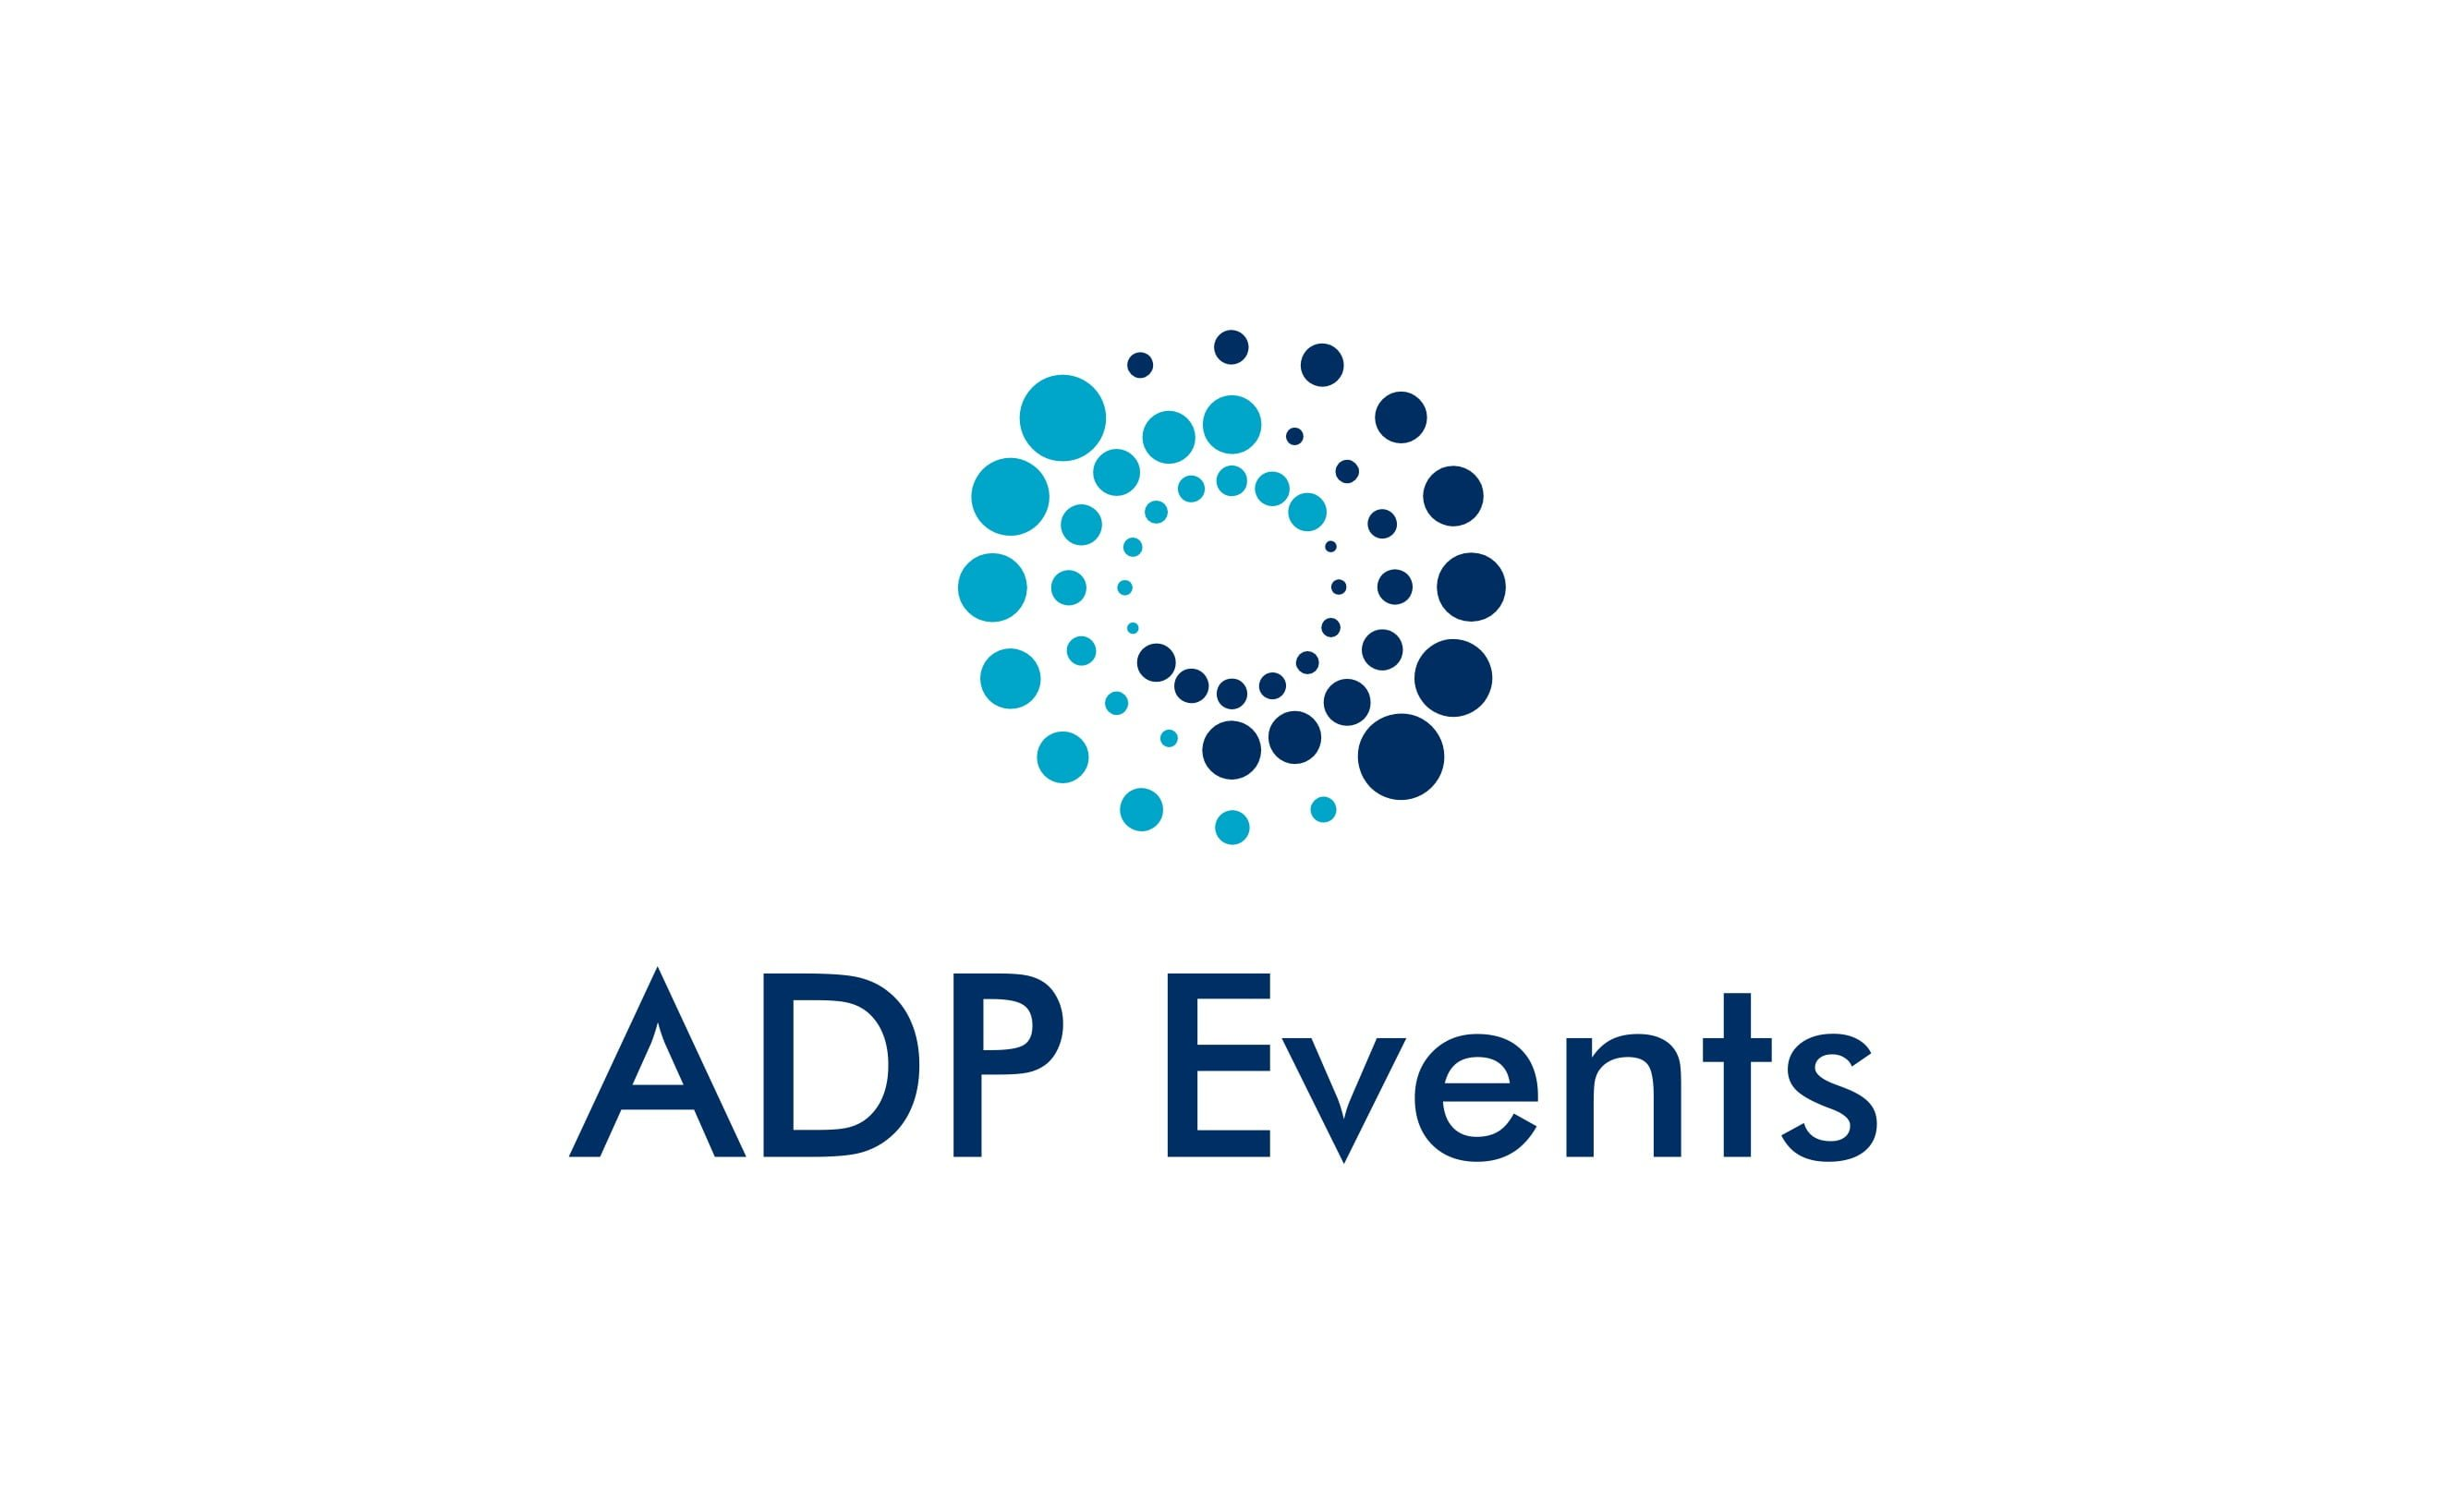 ADP Events